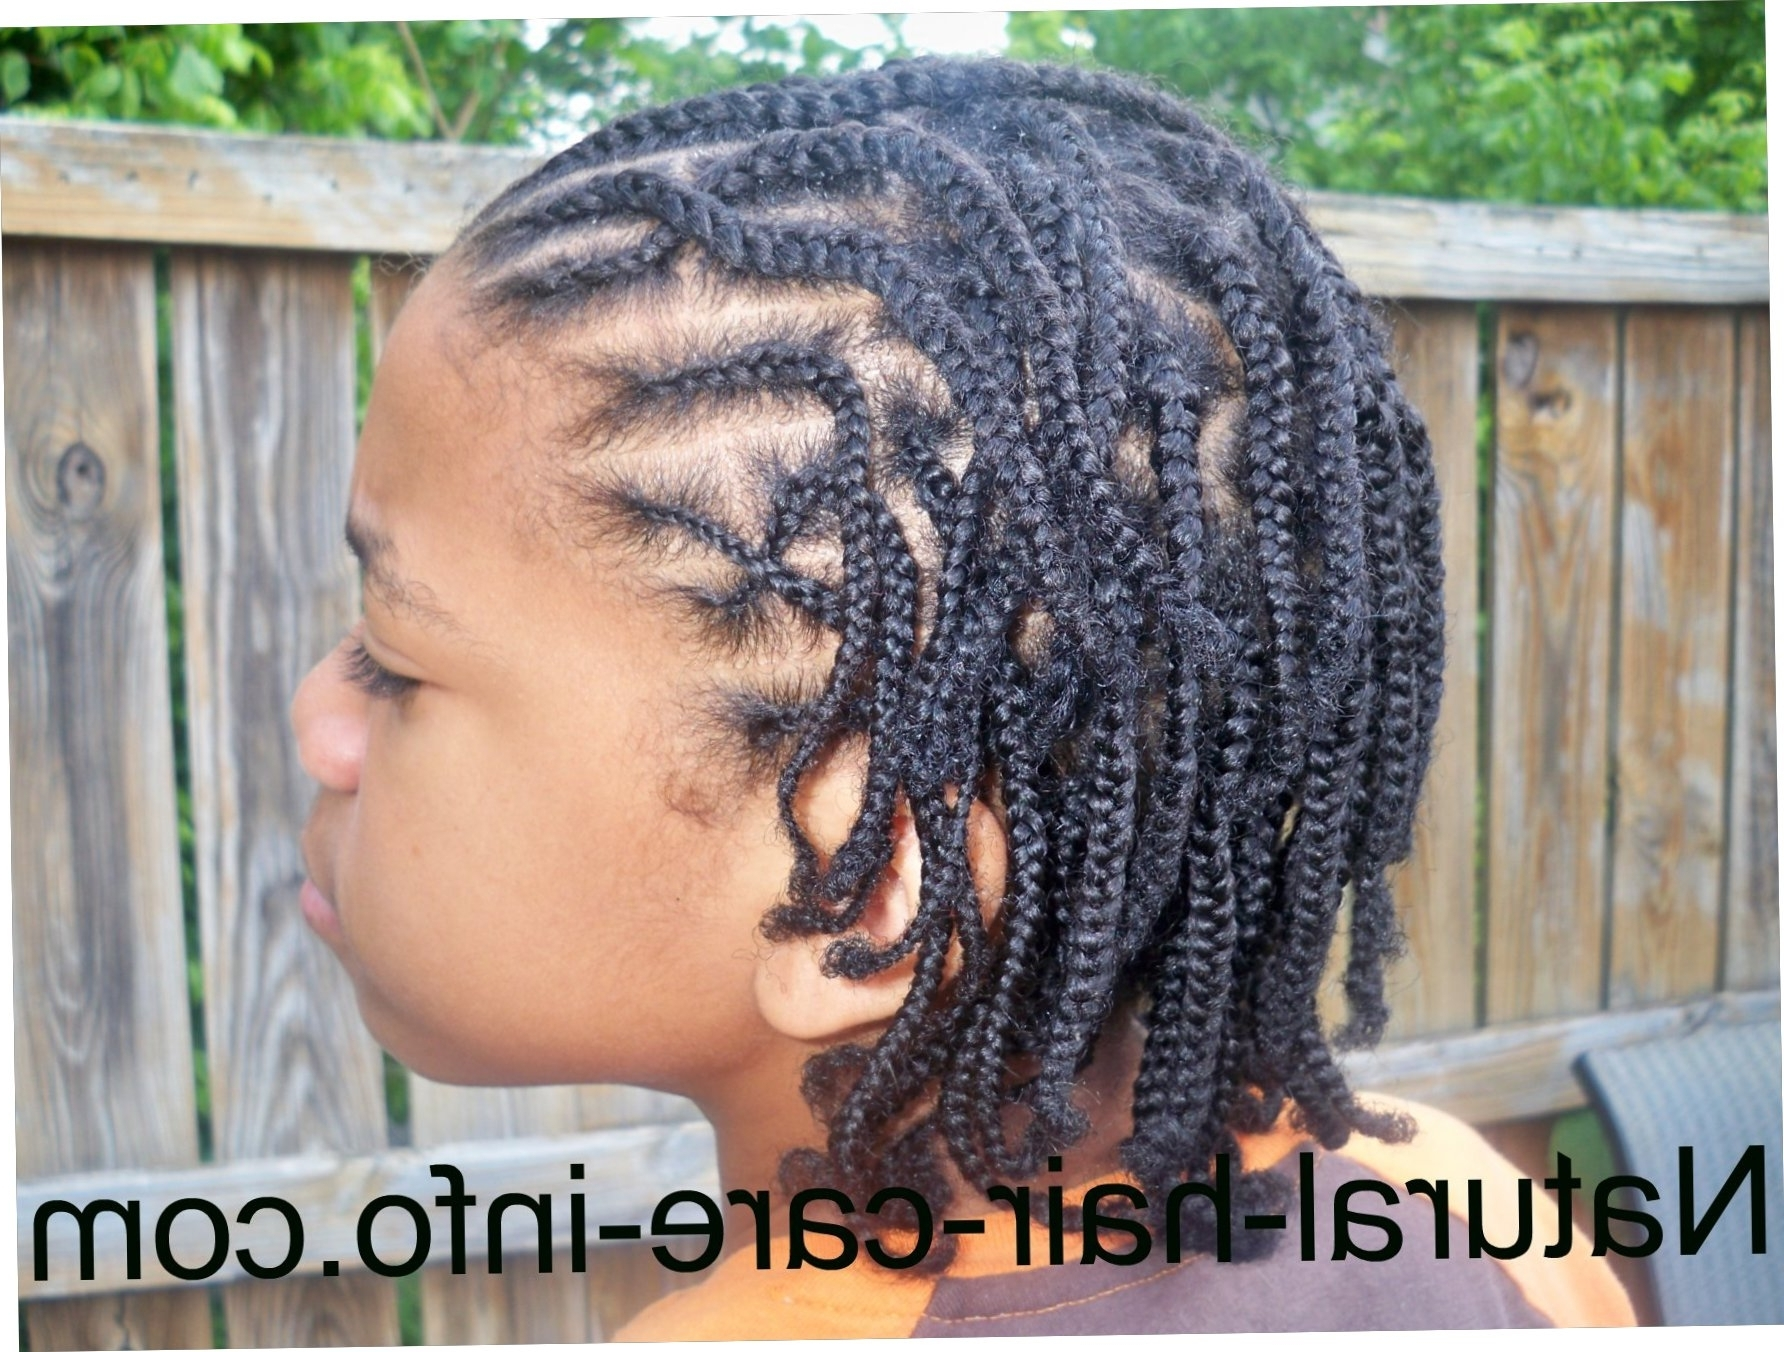 Famous Braided Hairstyles For Black Males Within Min Hairstyles For Braided Hairstyles For Black Man Black Mens (View 4 of 15)